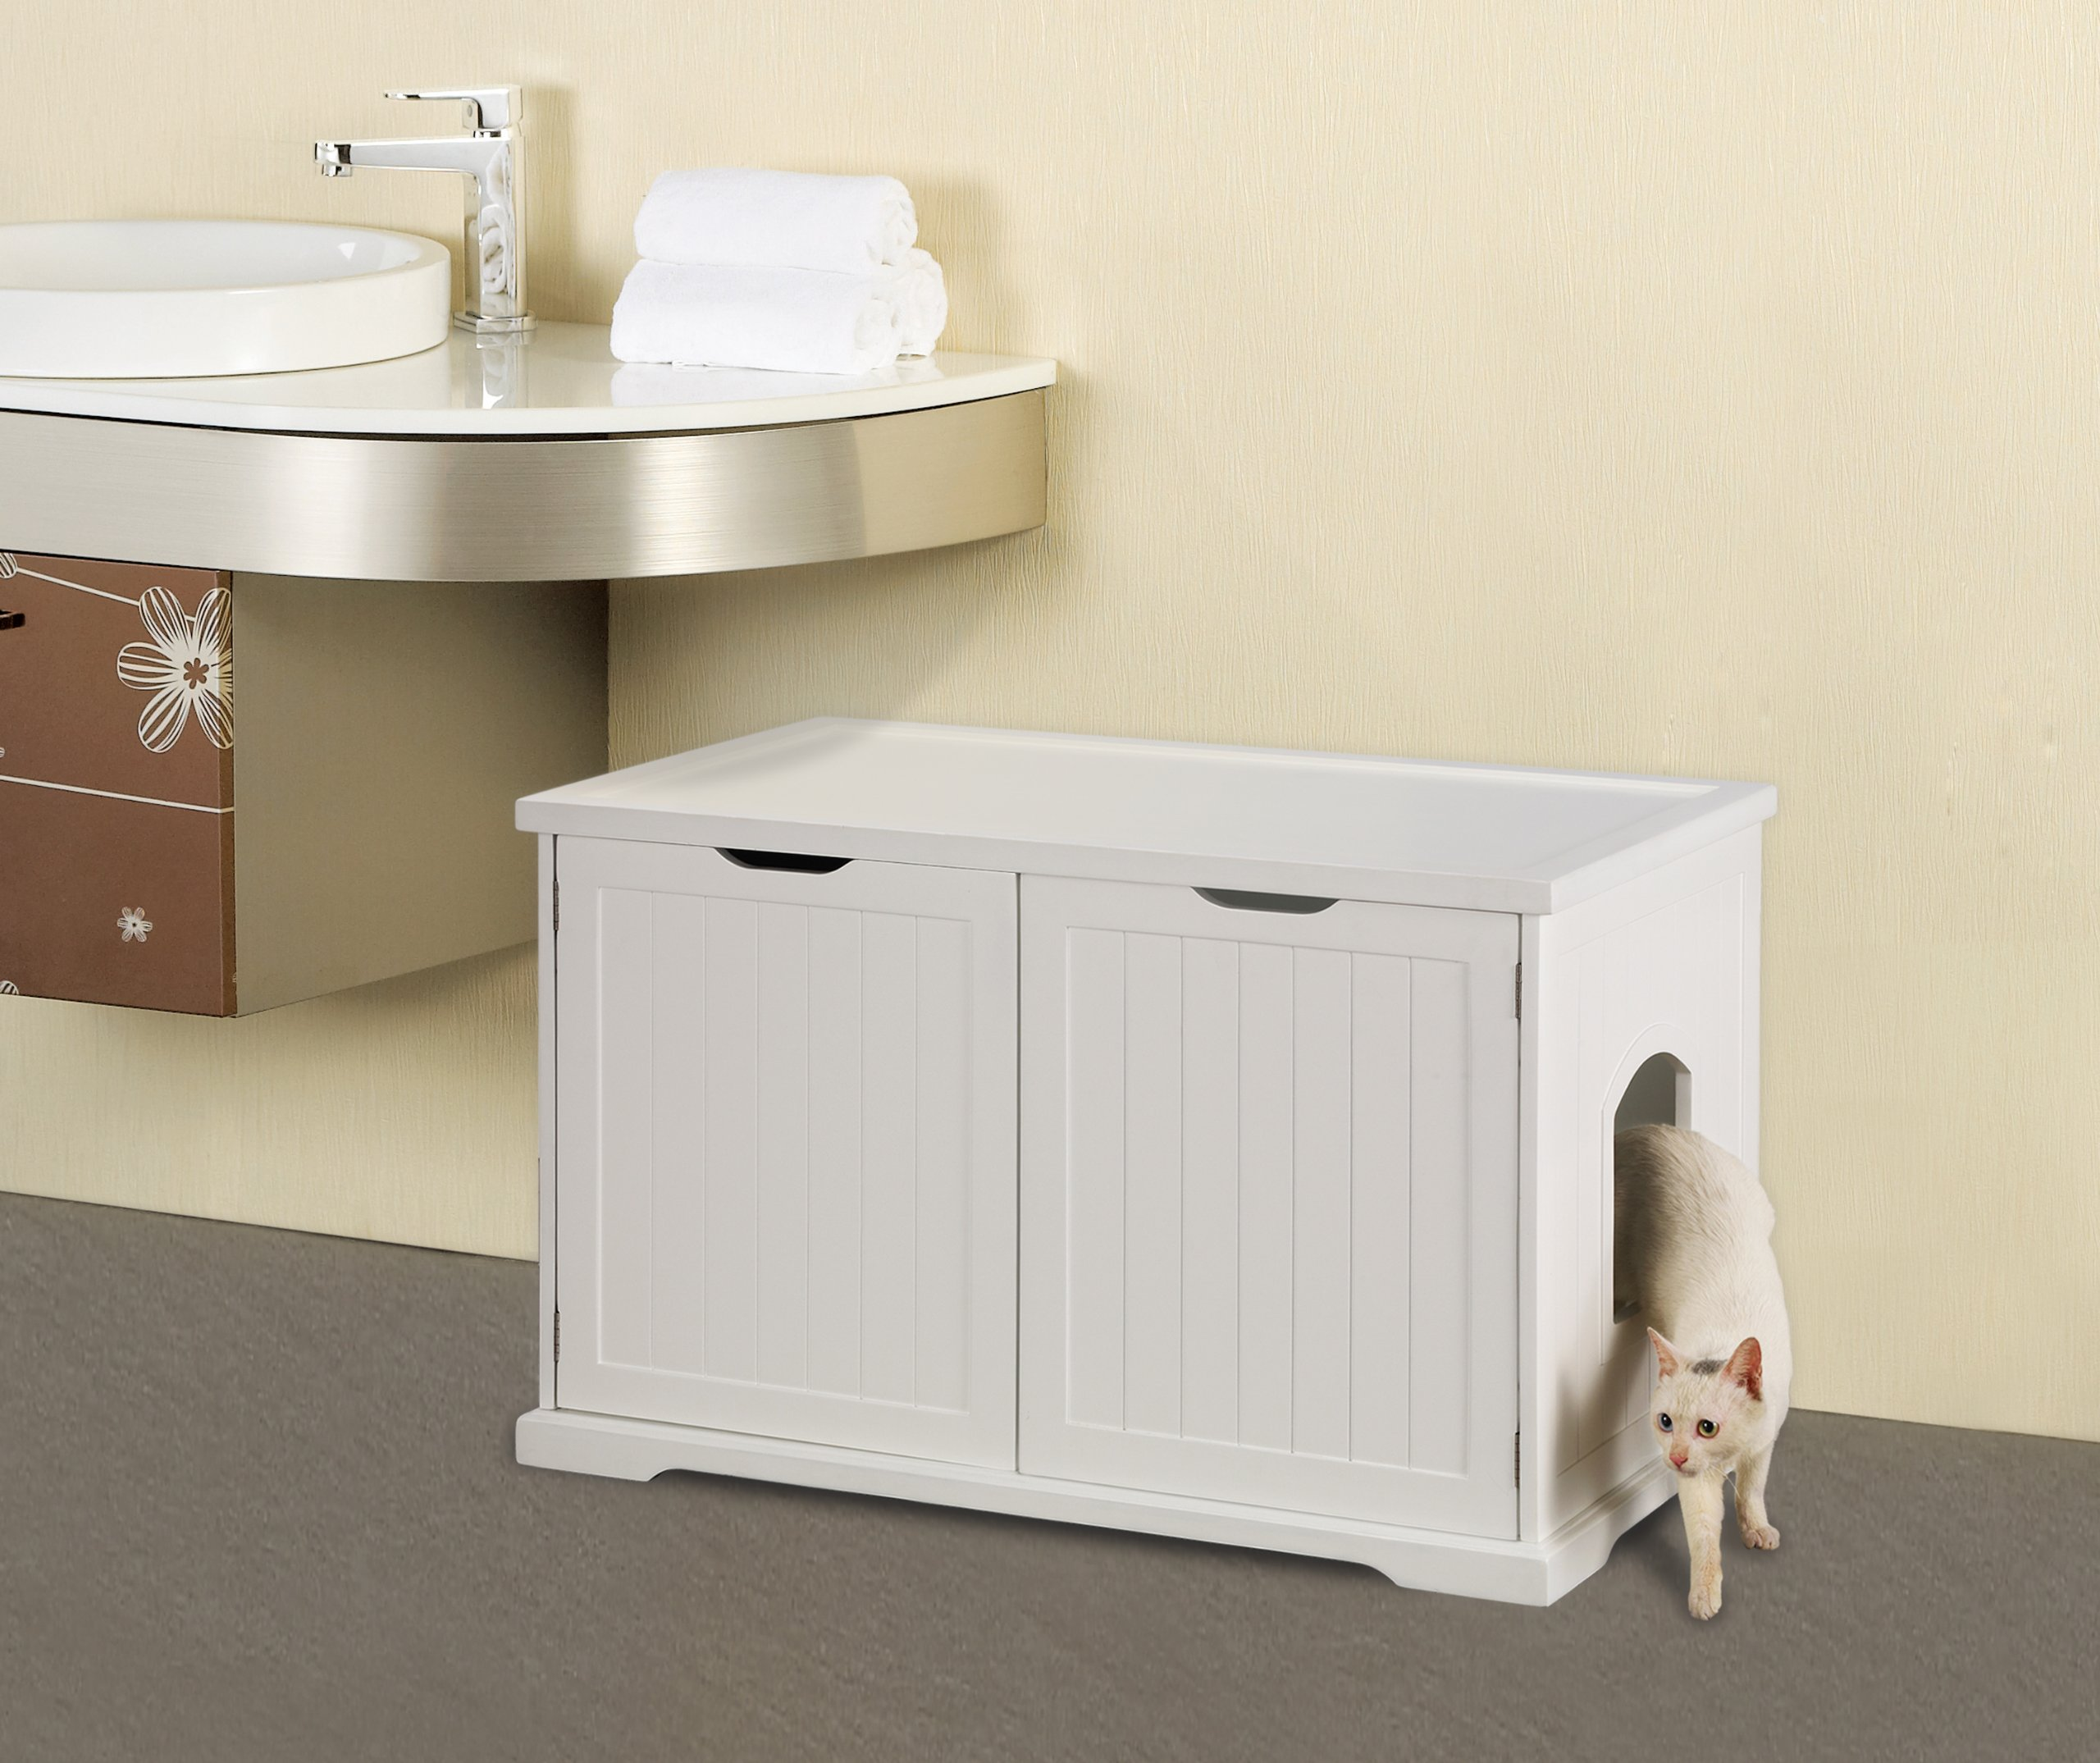 Merry Products Cat Washroom Bench, White by Merry (Image #3)